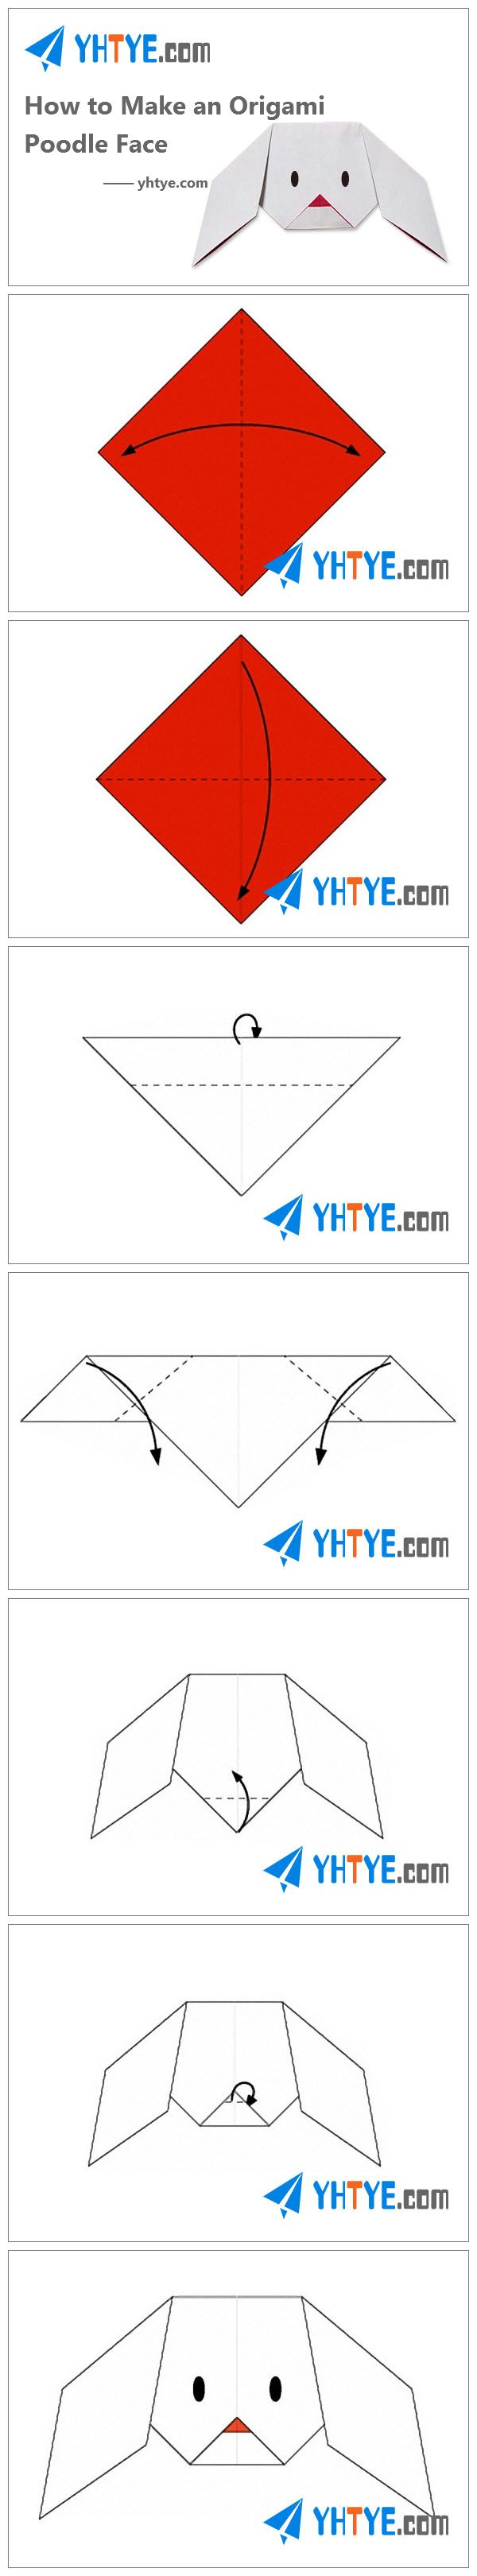 How to Make an Origami Poodle Face